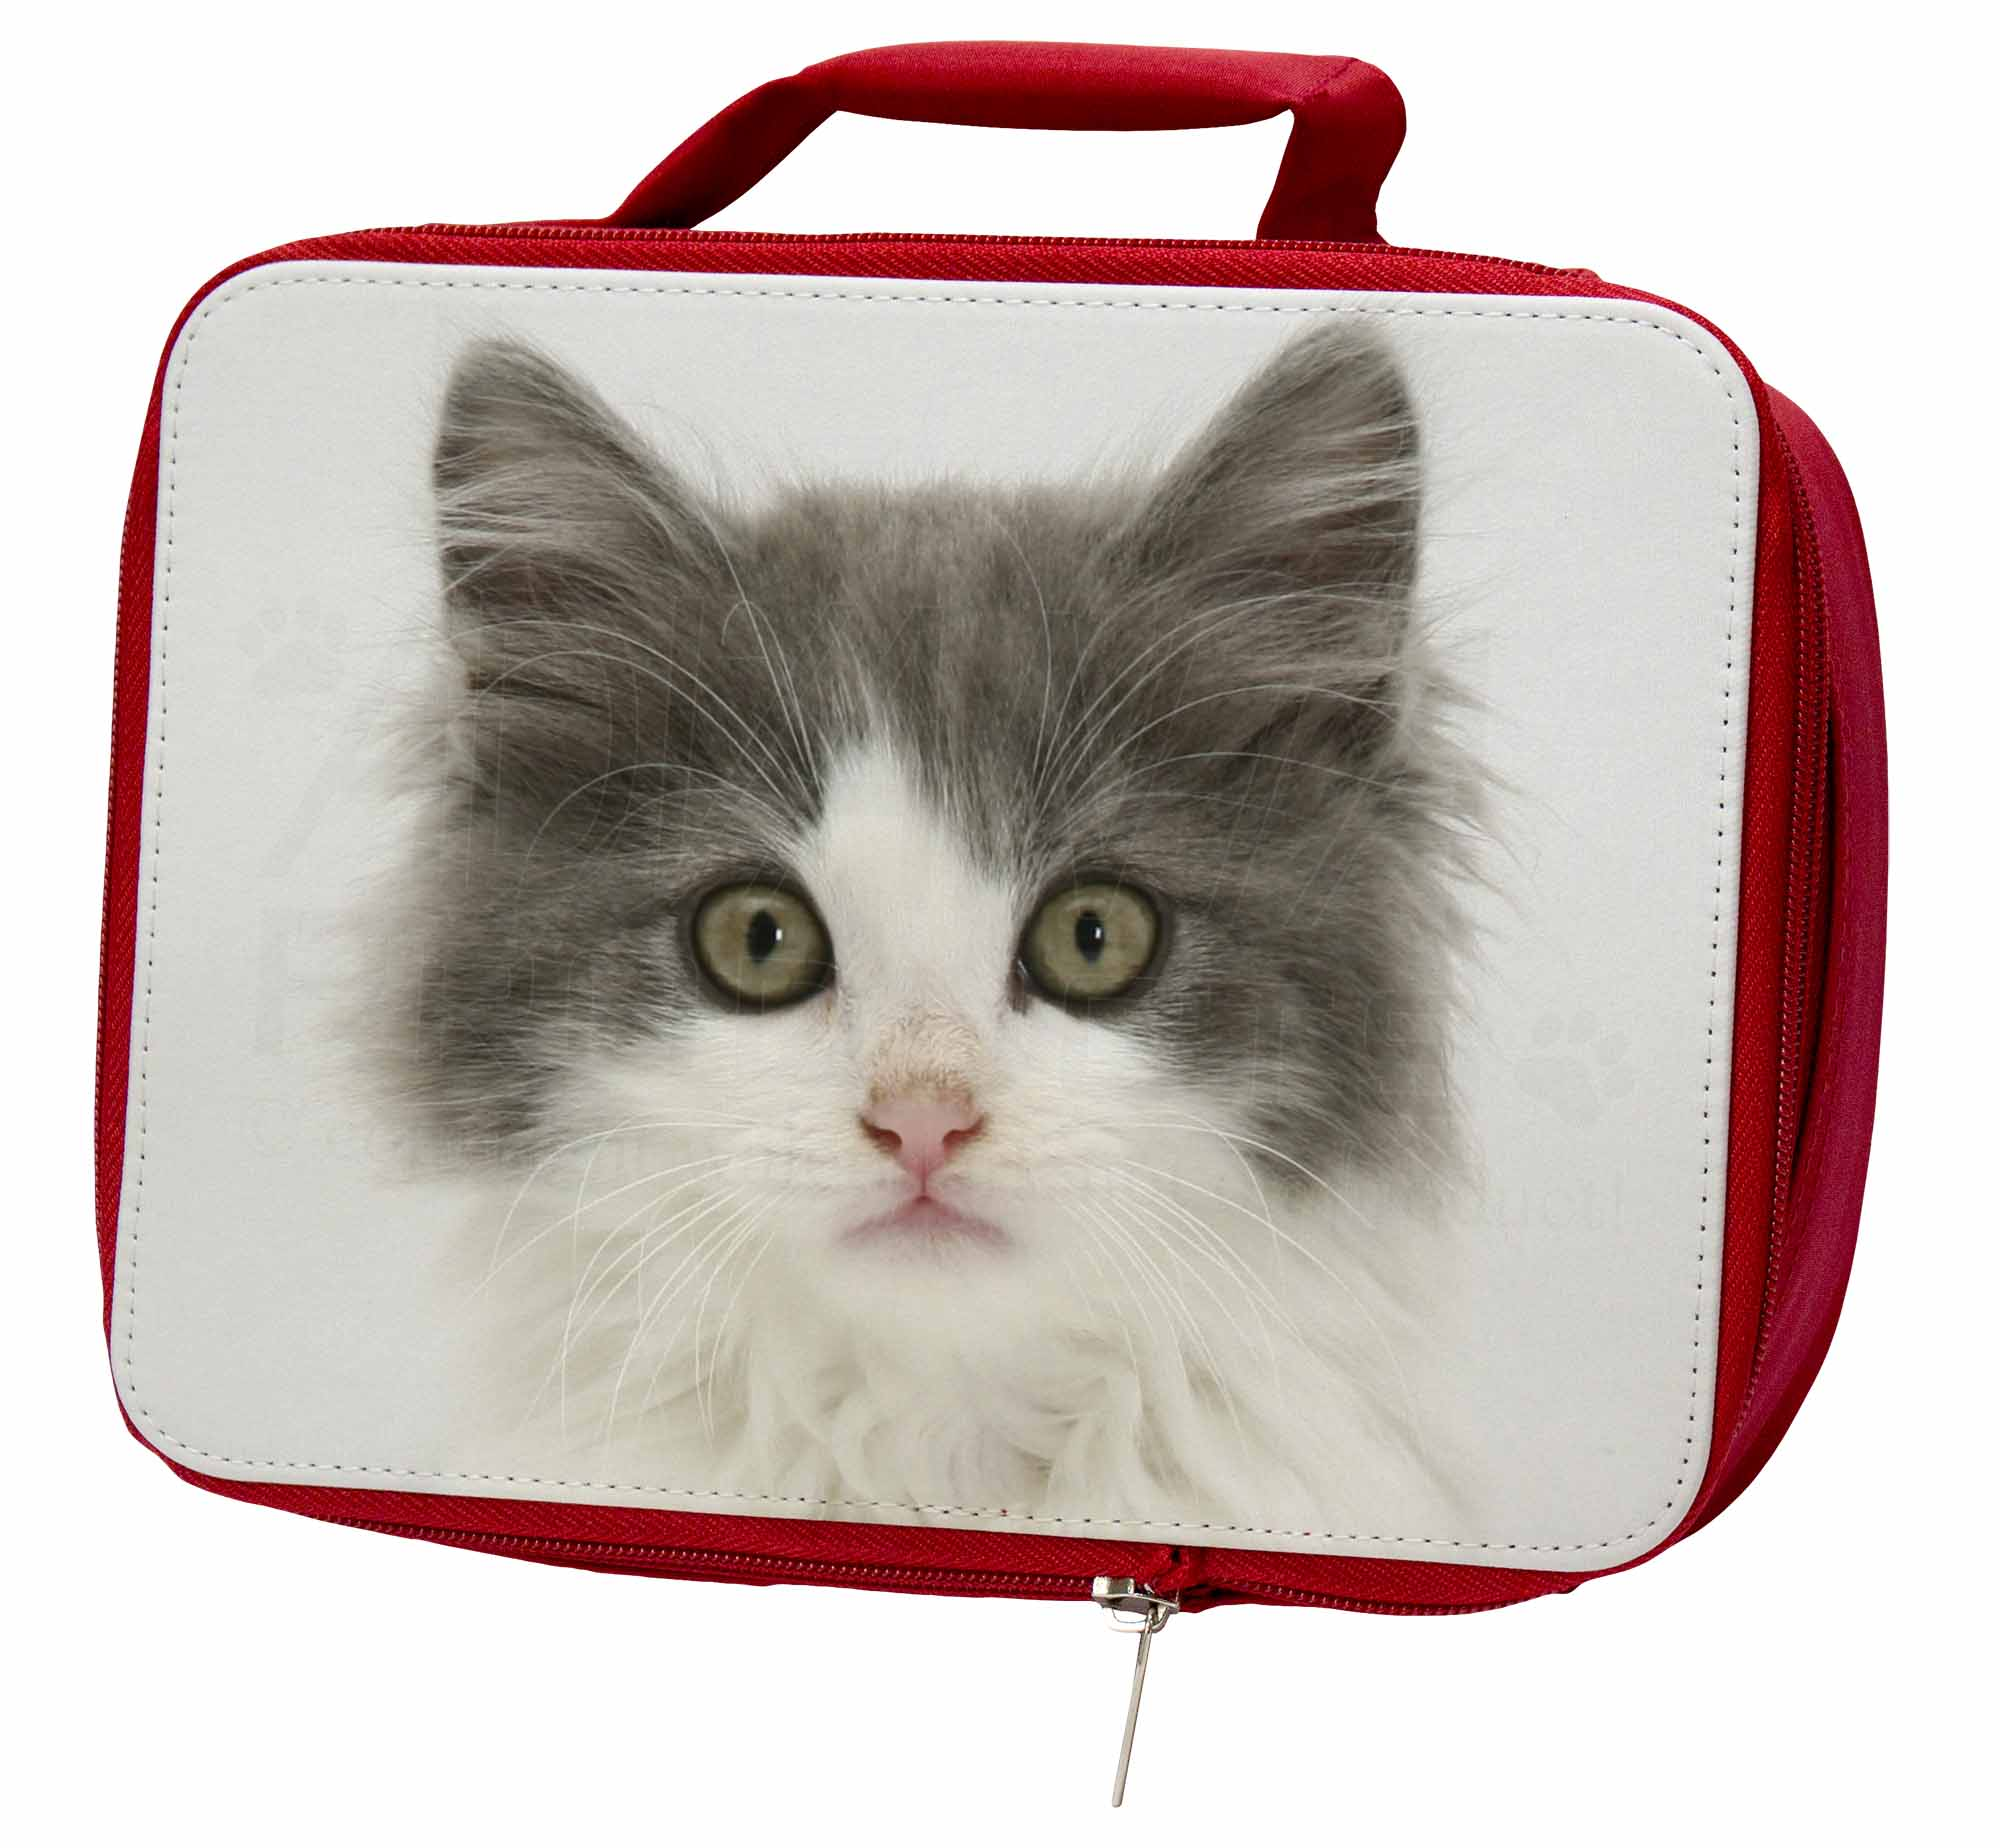 Grey, Face White Kittens Face Grey, Insulated Red School Lunch Box/Picnic Bag, AC-153LBR 55eec4